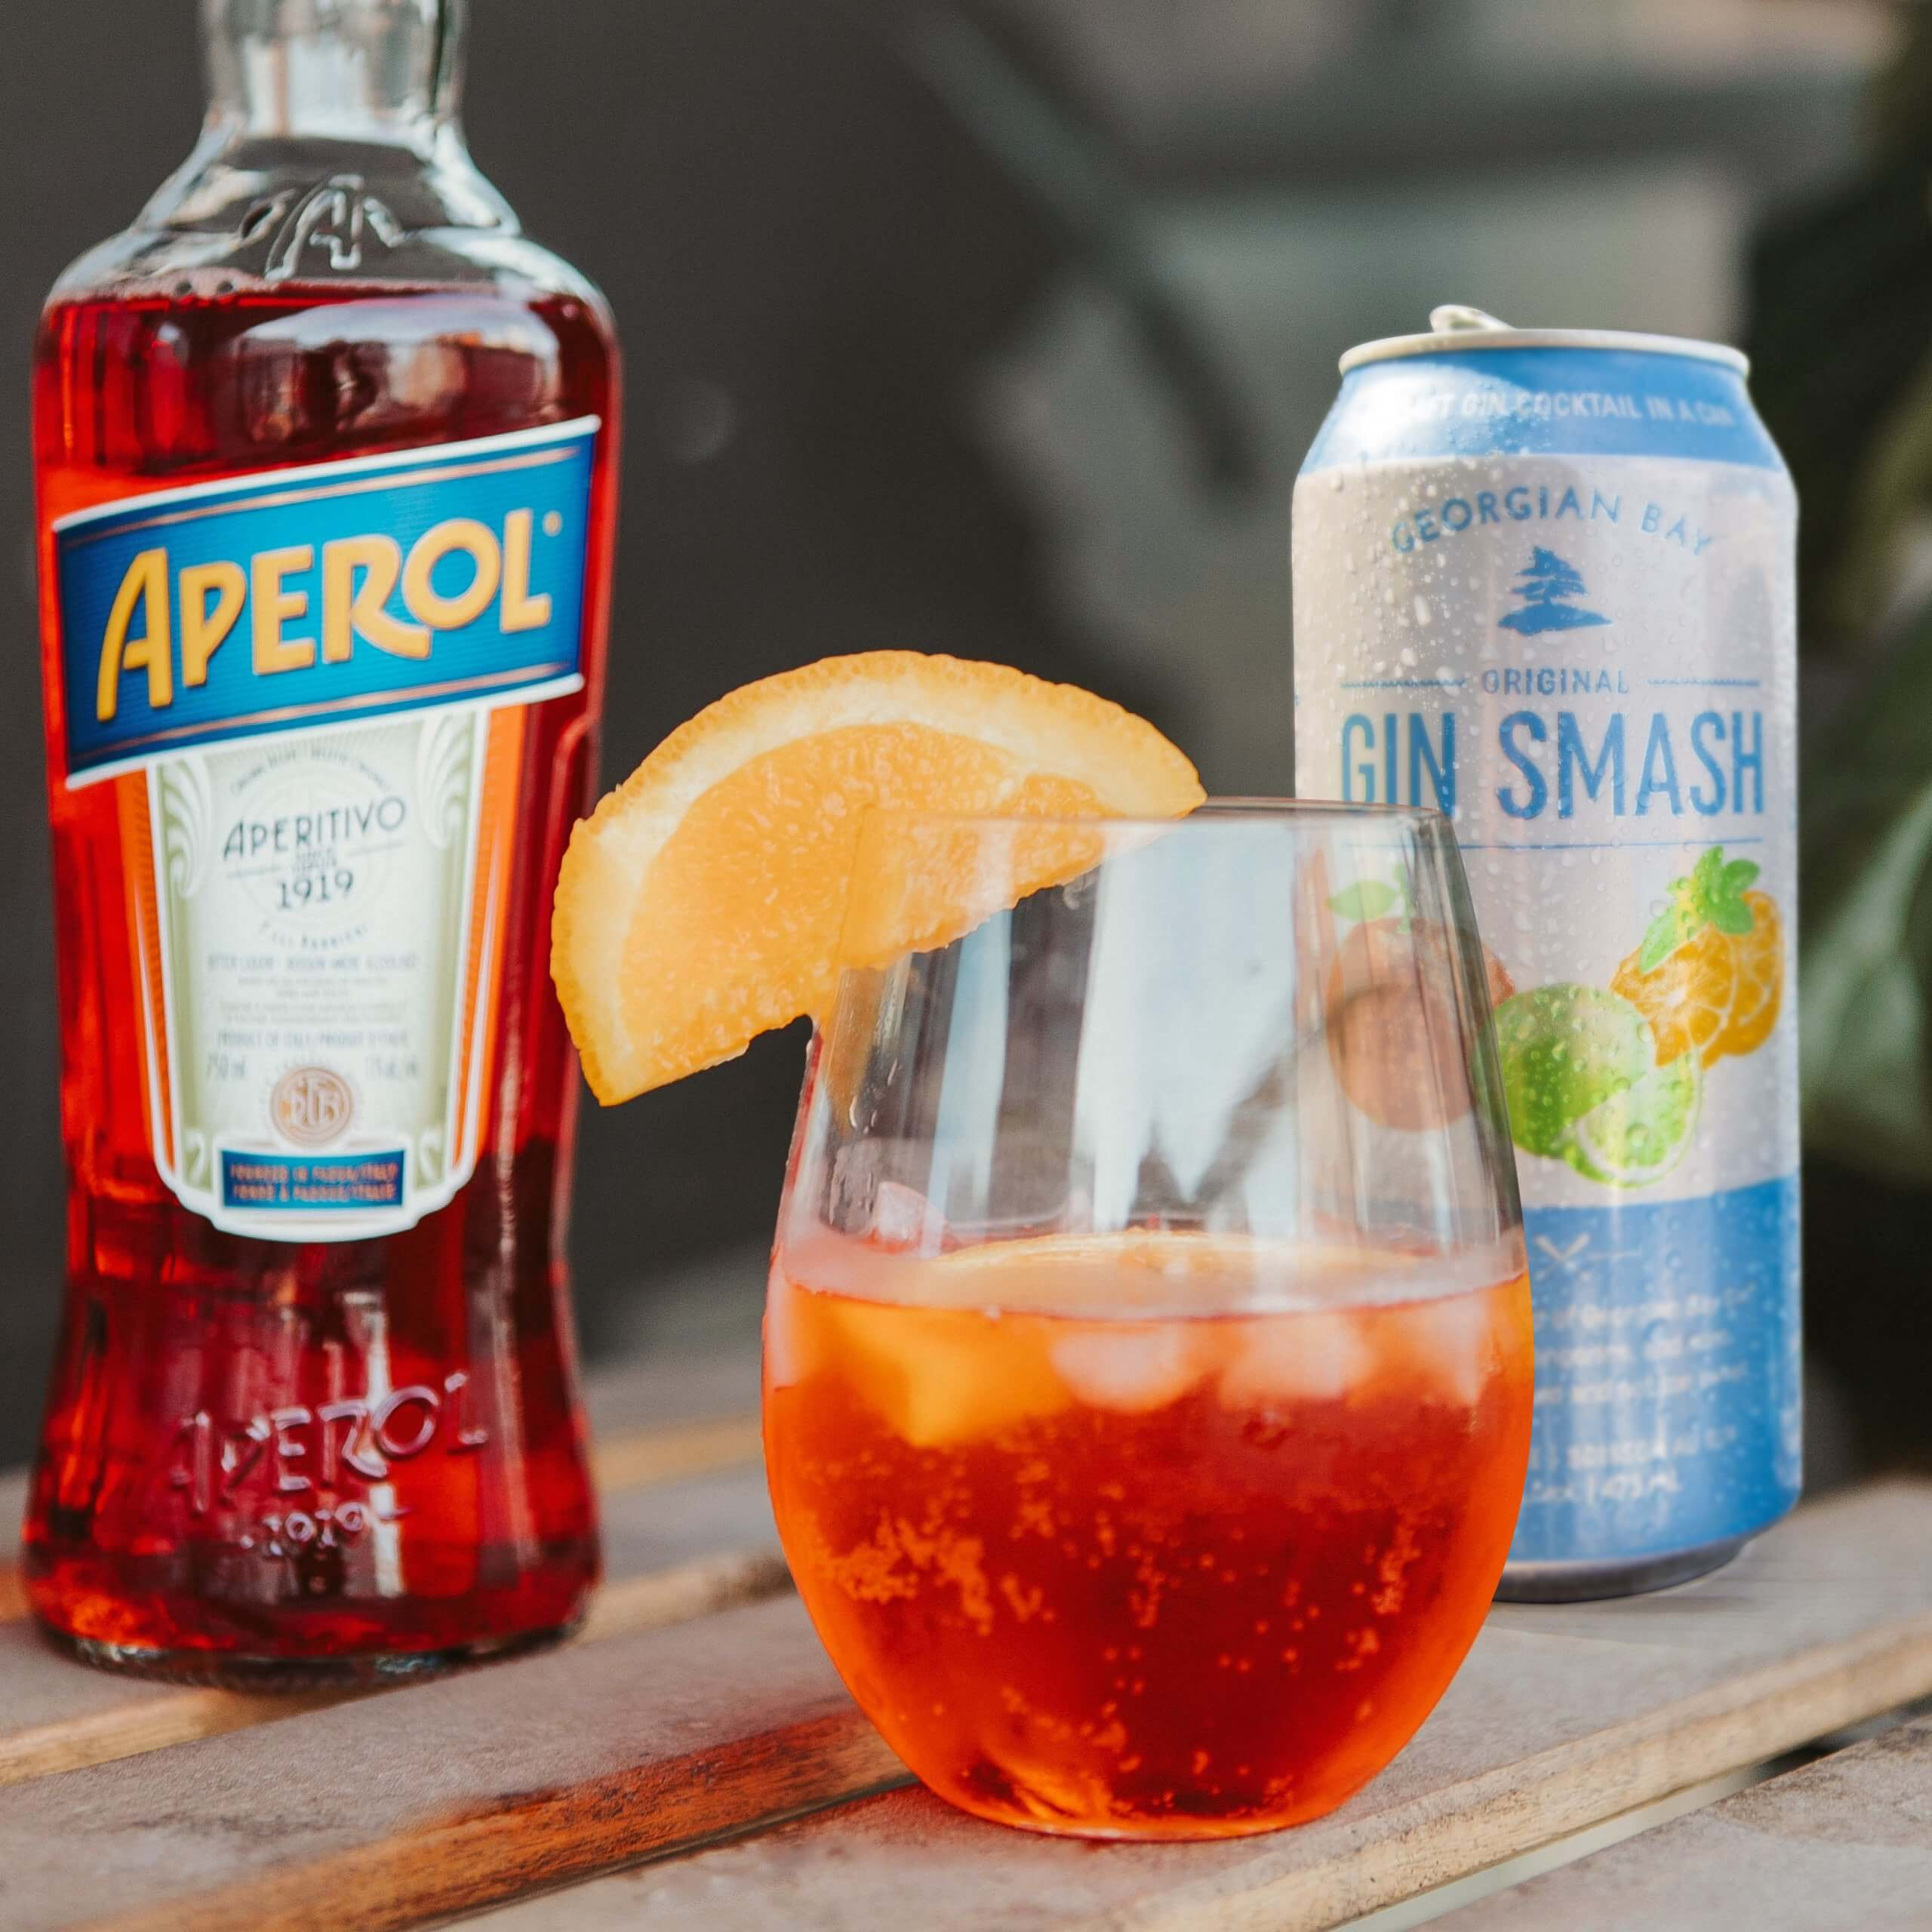 Georgian Bay Gin Smash Cocktail - Aperol Smash